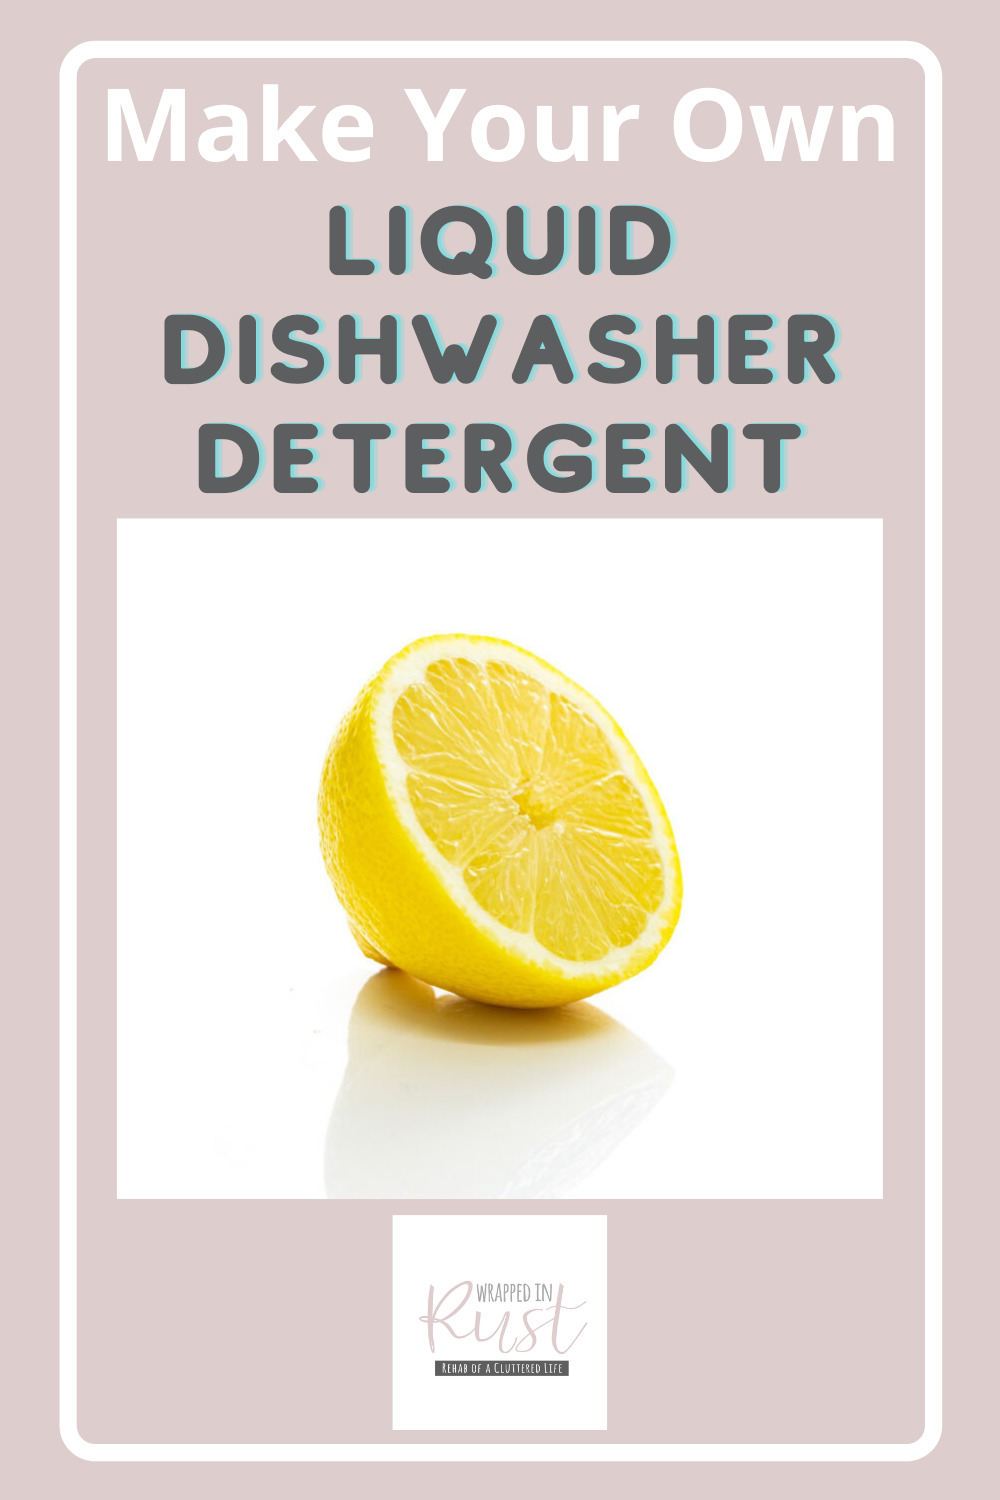 Wrappedinrust.com has creative solutions for tricky cleaning projects. Keep your dishes spotless without overspending on store bought solution. Learn how to make liquid detergent all on your own!